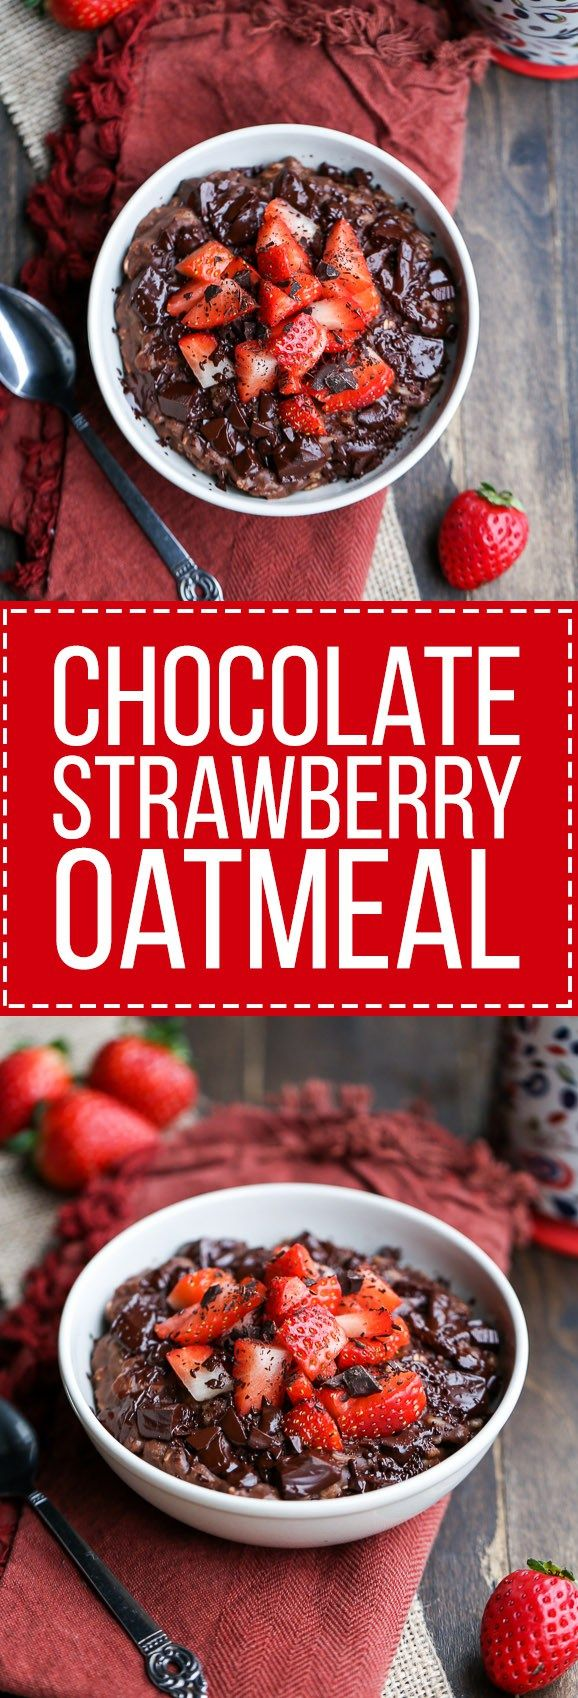 This Chocolate Strawberry Oatmeal tastes like dessert for breakfast! This oatmeal is sweetened with a banana and has cocoa powder and chocolate chips to make it super chocolatey. It's gluten-free, ref